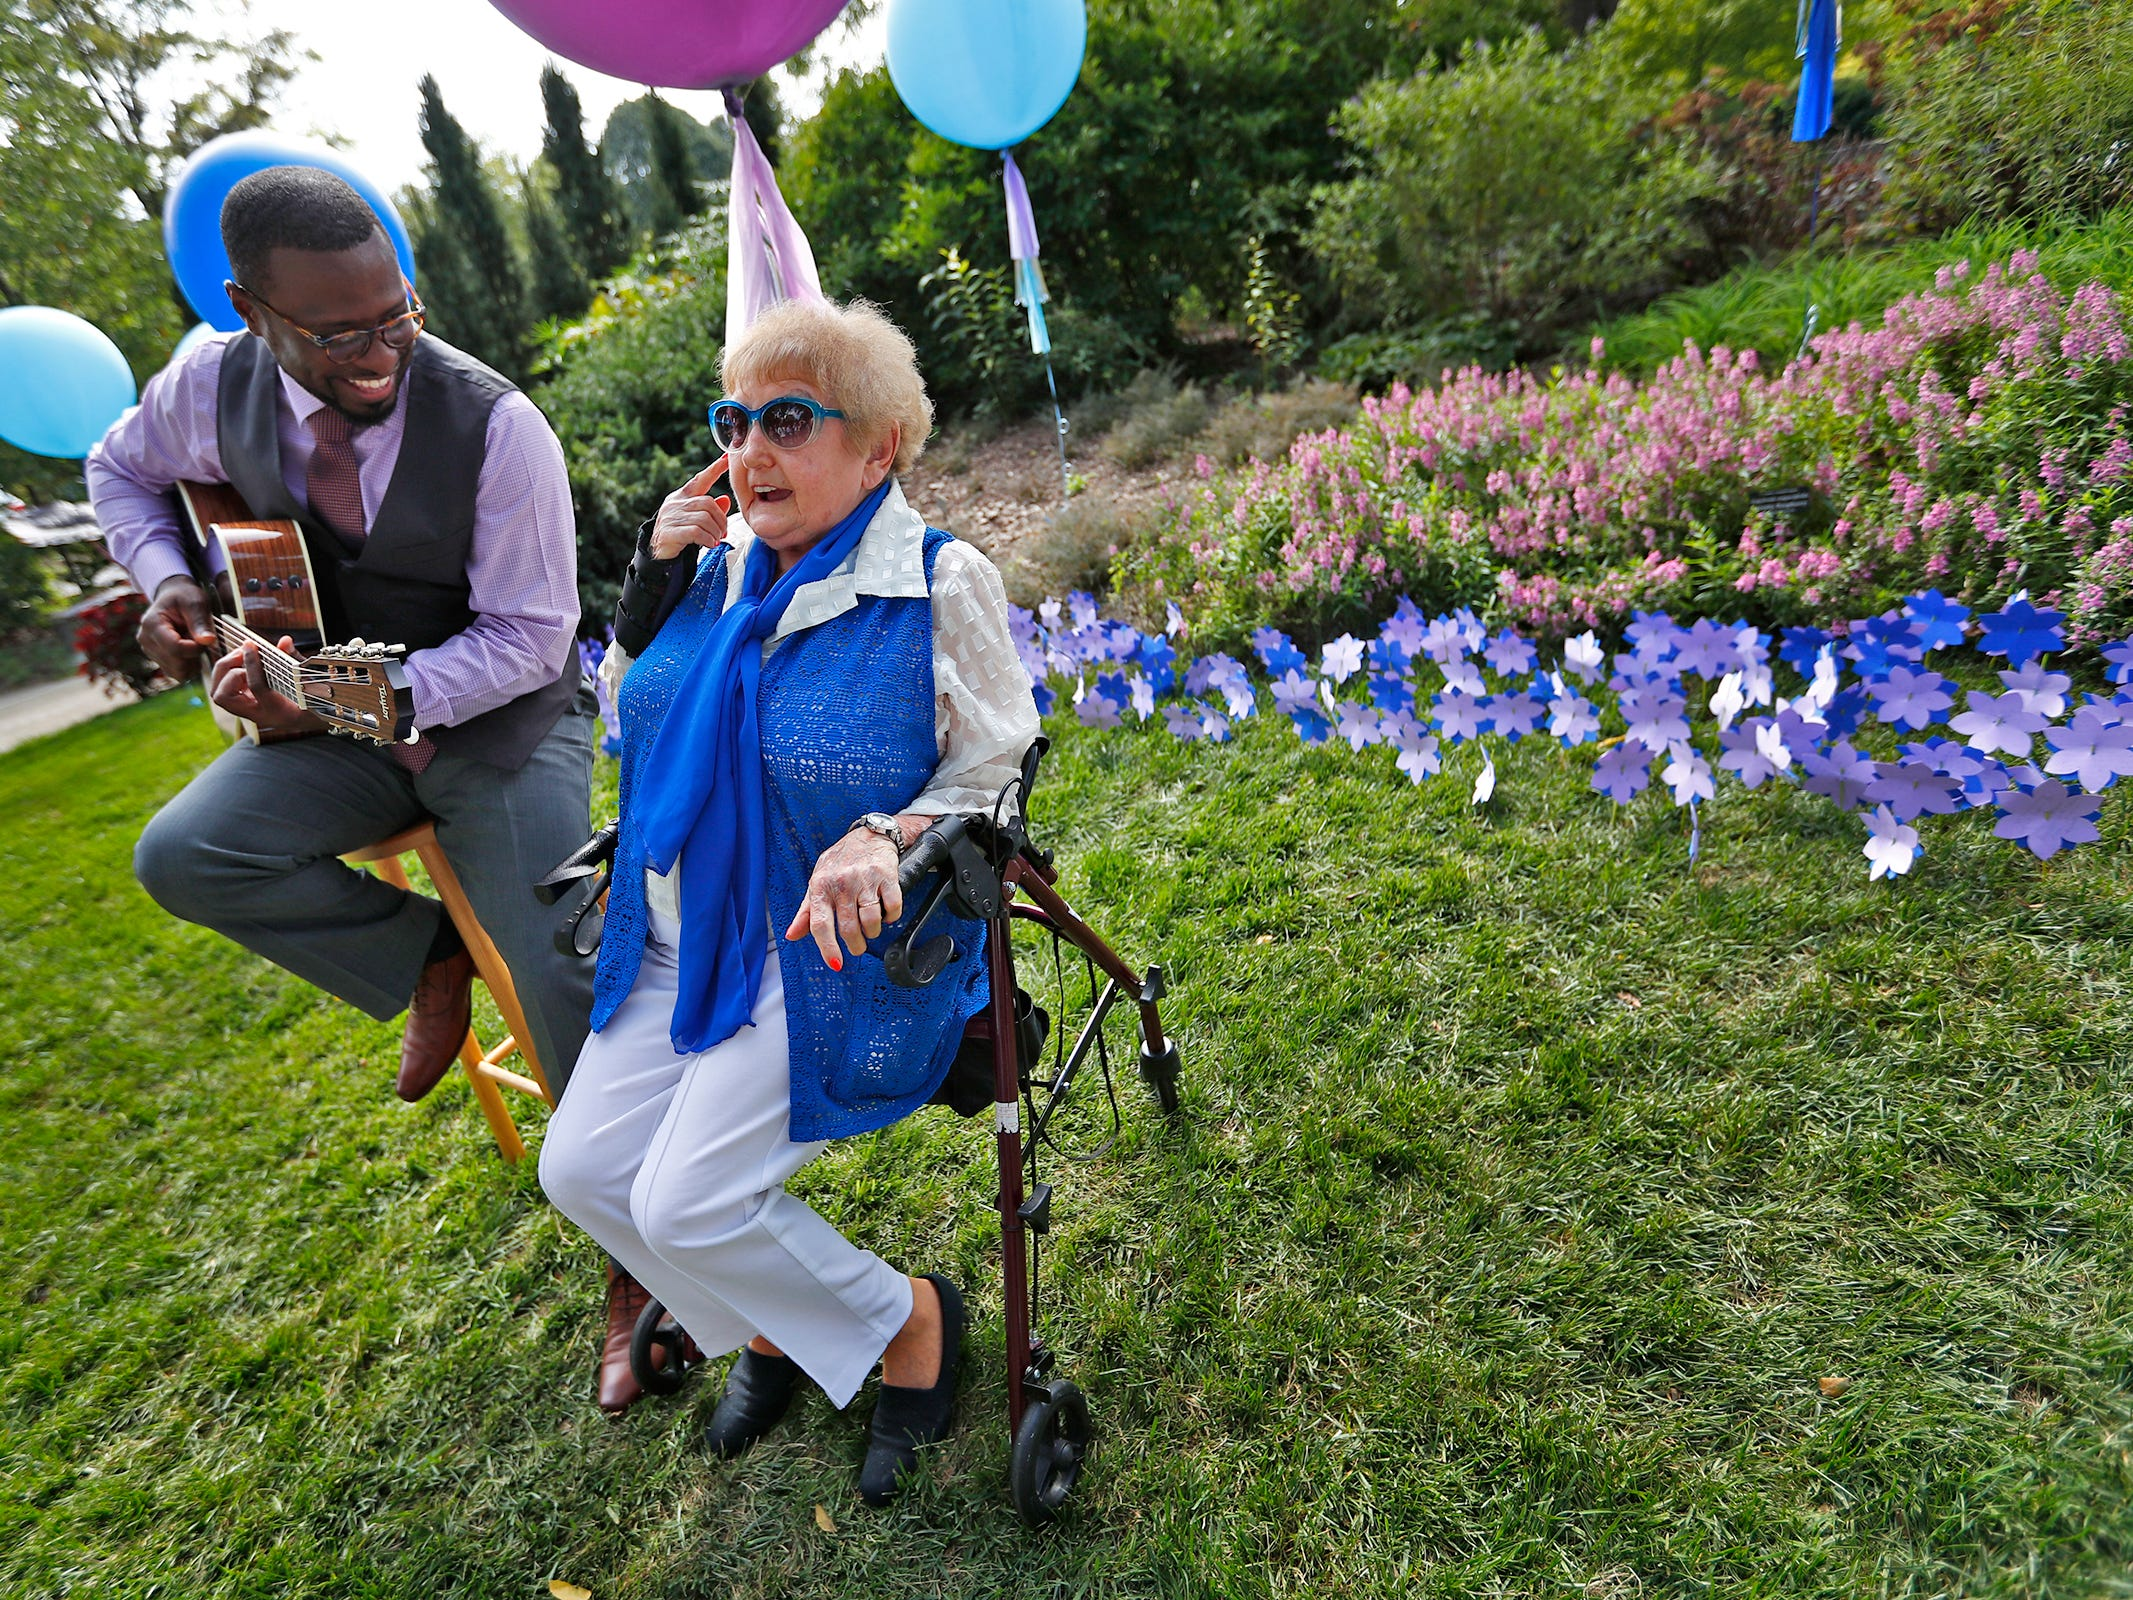 """Holocaust survivor Eva Kor, right, talks with guitarist Tyron Cooper at the Eva Kor Peace Garden at Newfields, Monday, Sept. 17, 2018.  Students viewed the documentary """"Eva,"""" about Kor, and then helped in the planting of the Peace Garden.  Kor also spoke with the students, asking them to think of one thing to make the world better."""